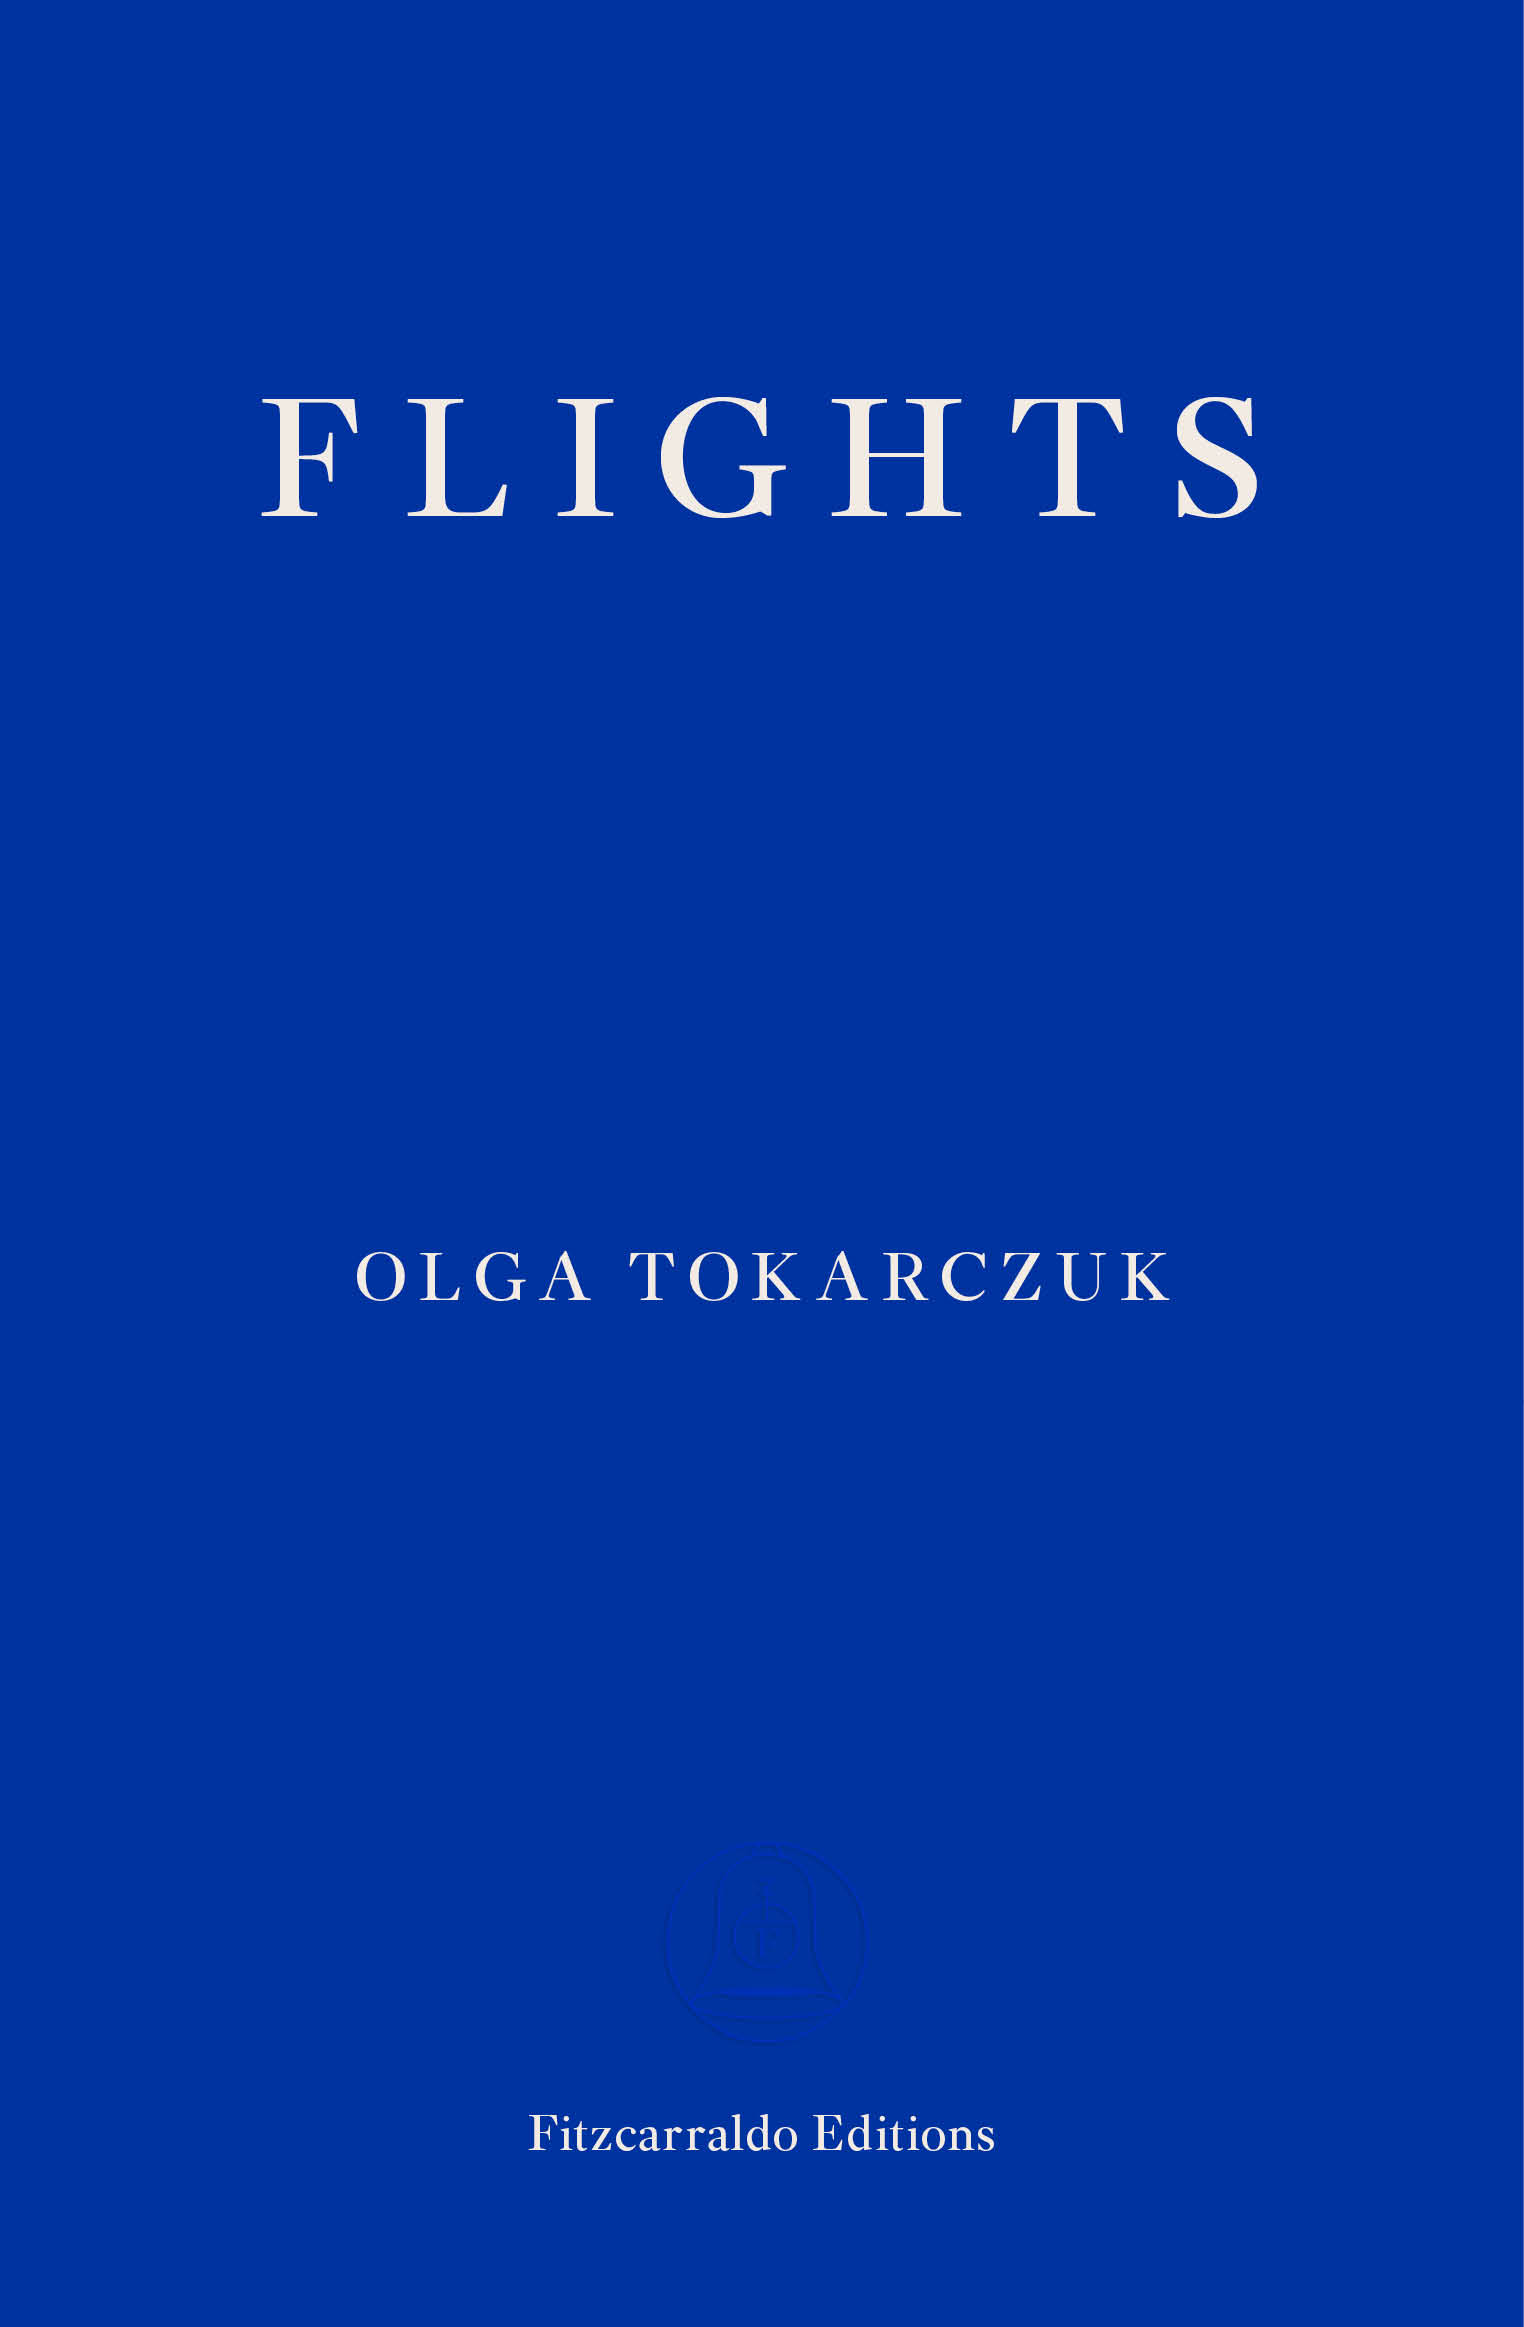 Olga tokarczuk flights